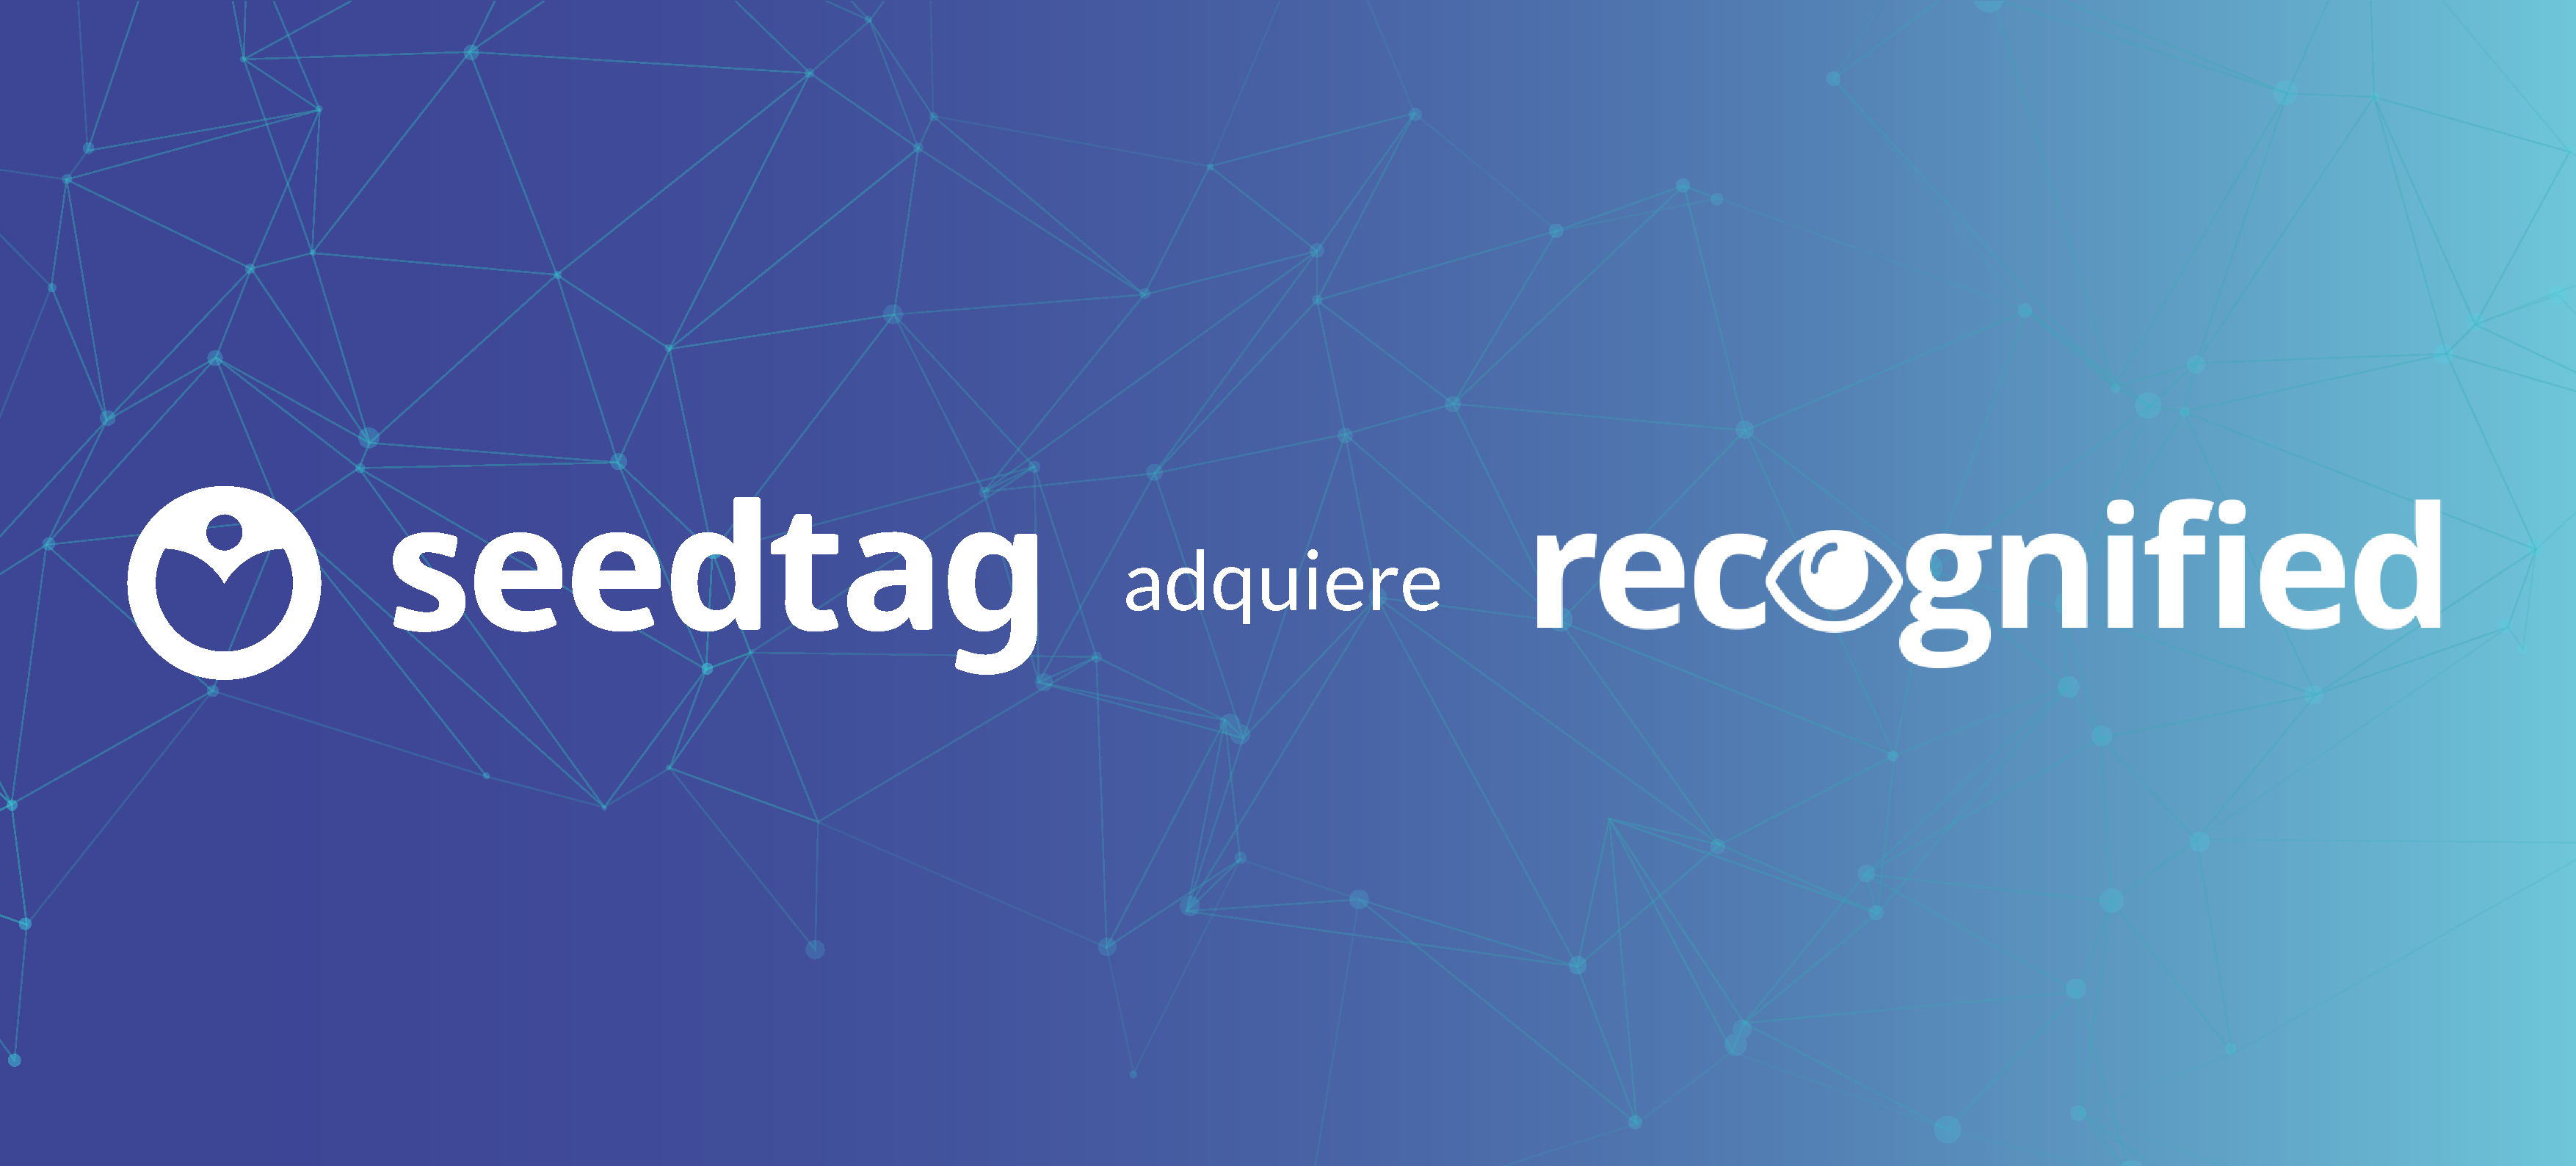 Foto de Seedtag adquiere Recognified